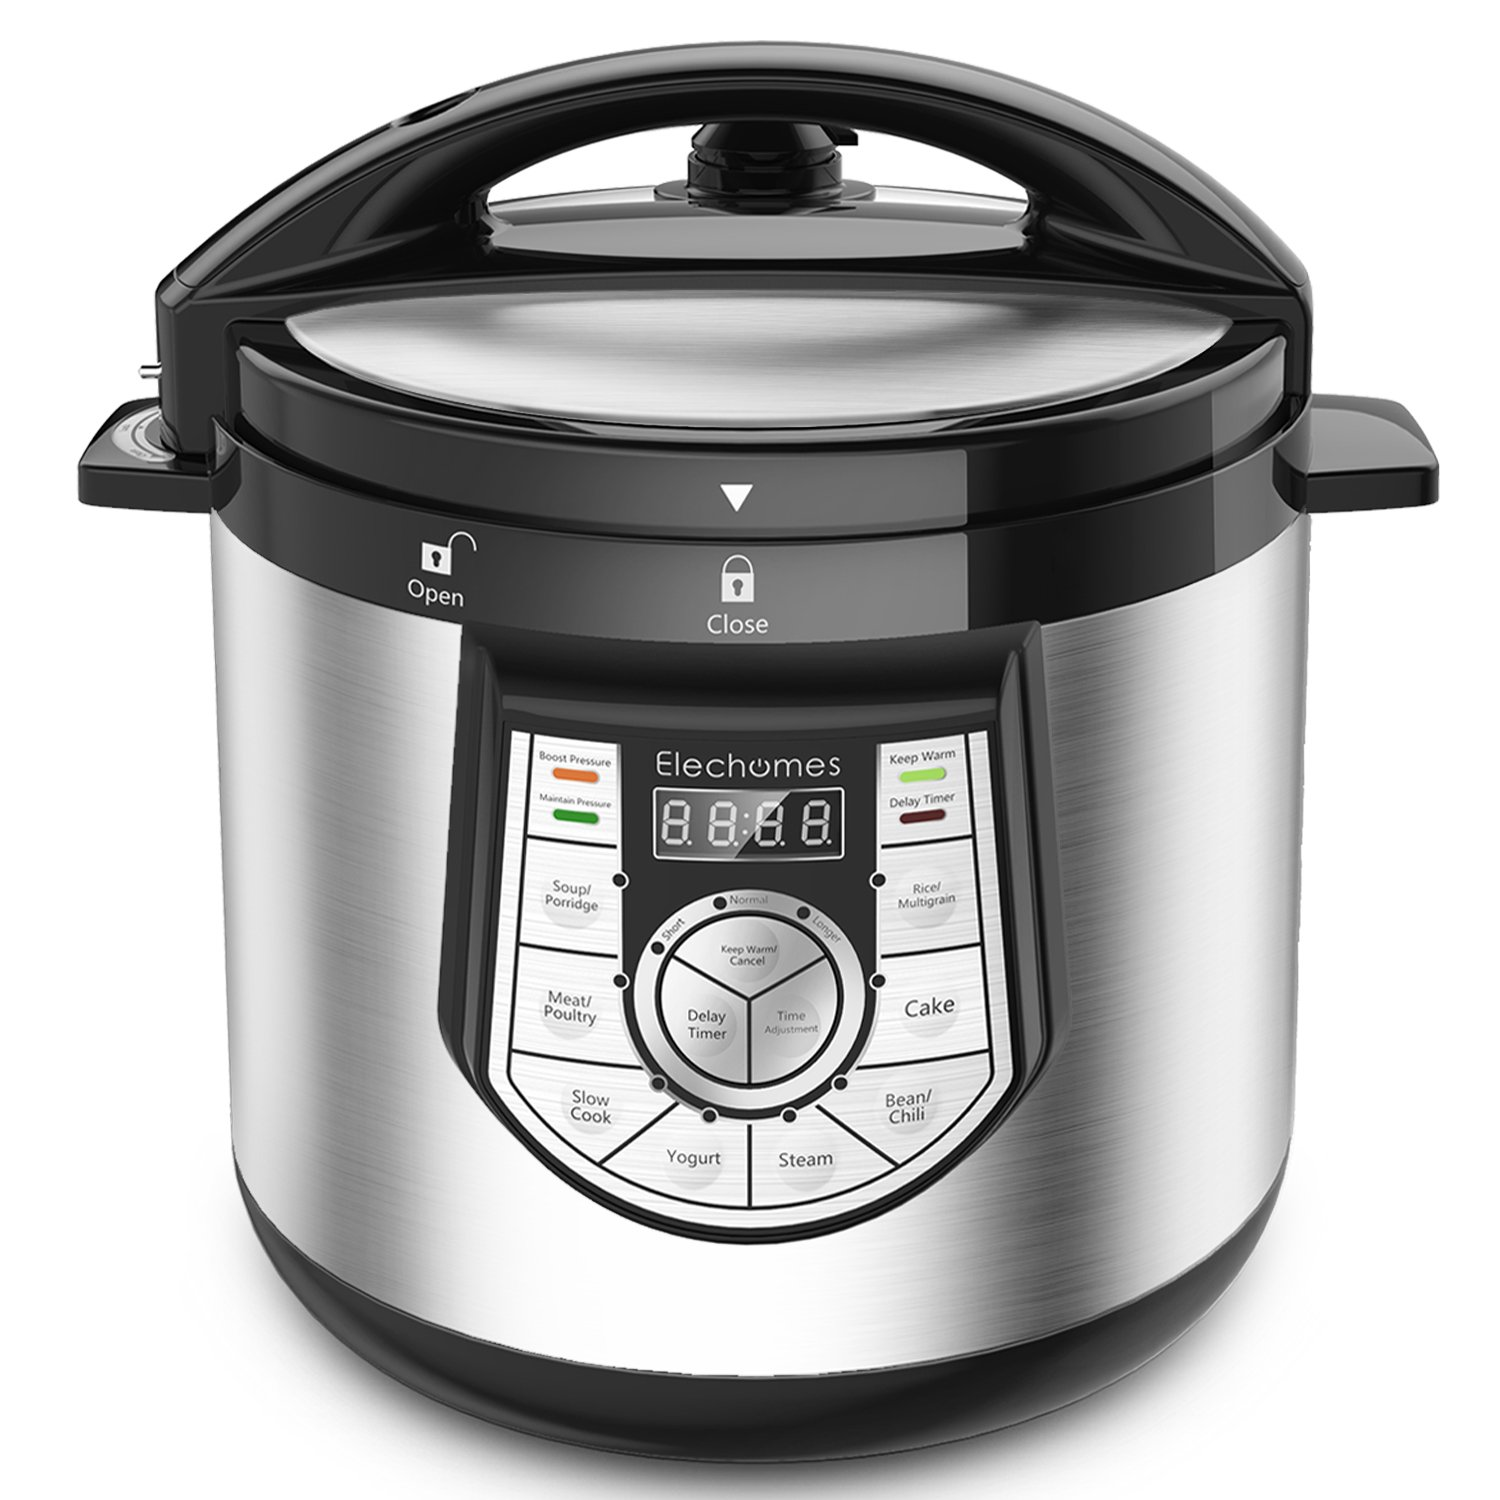 12-in-1 Pressure Cooker - Elechomes 1000 W 6 Qt Multi-use Programmable Electric Pressure Cooker